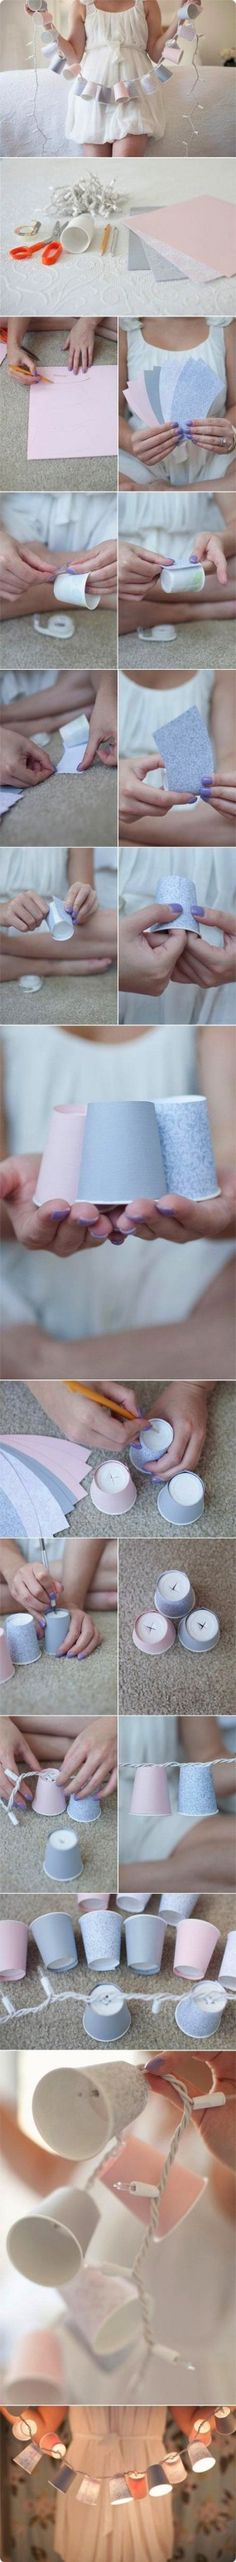 Little dixie cups covered in fabric or card stock.